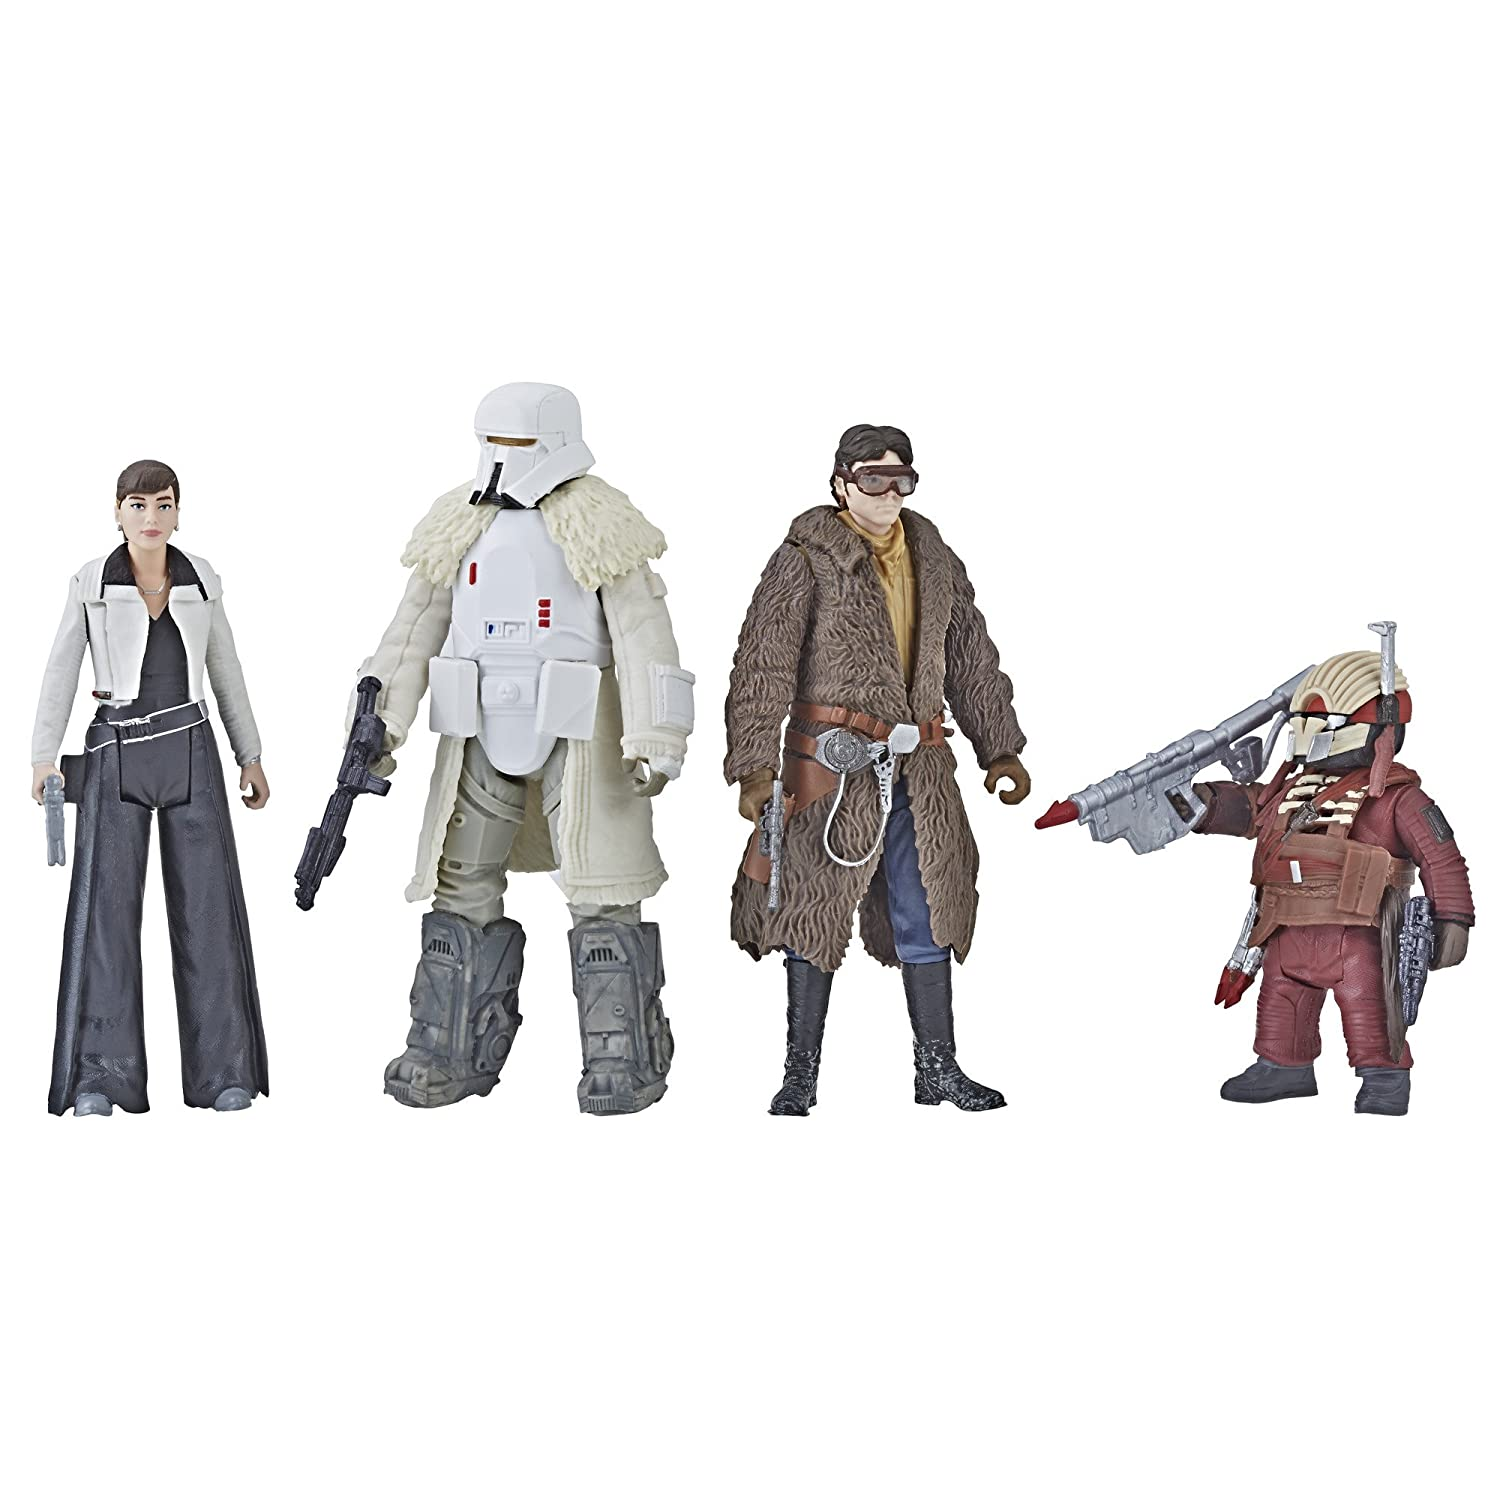 Star Wars Force Link 2.0 Mission On Vandor-1 3.75 Figure 4 Pack Hasbro E1093